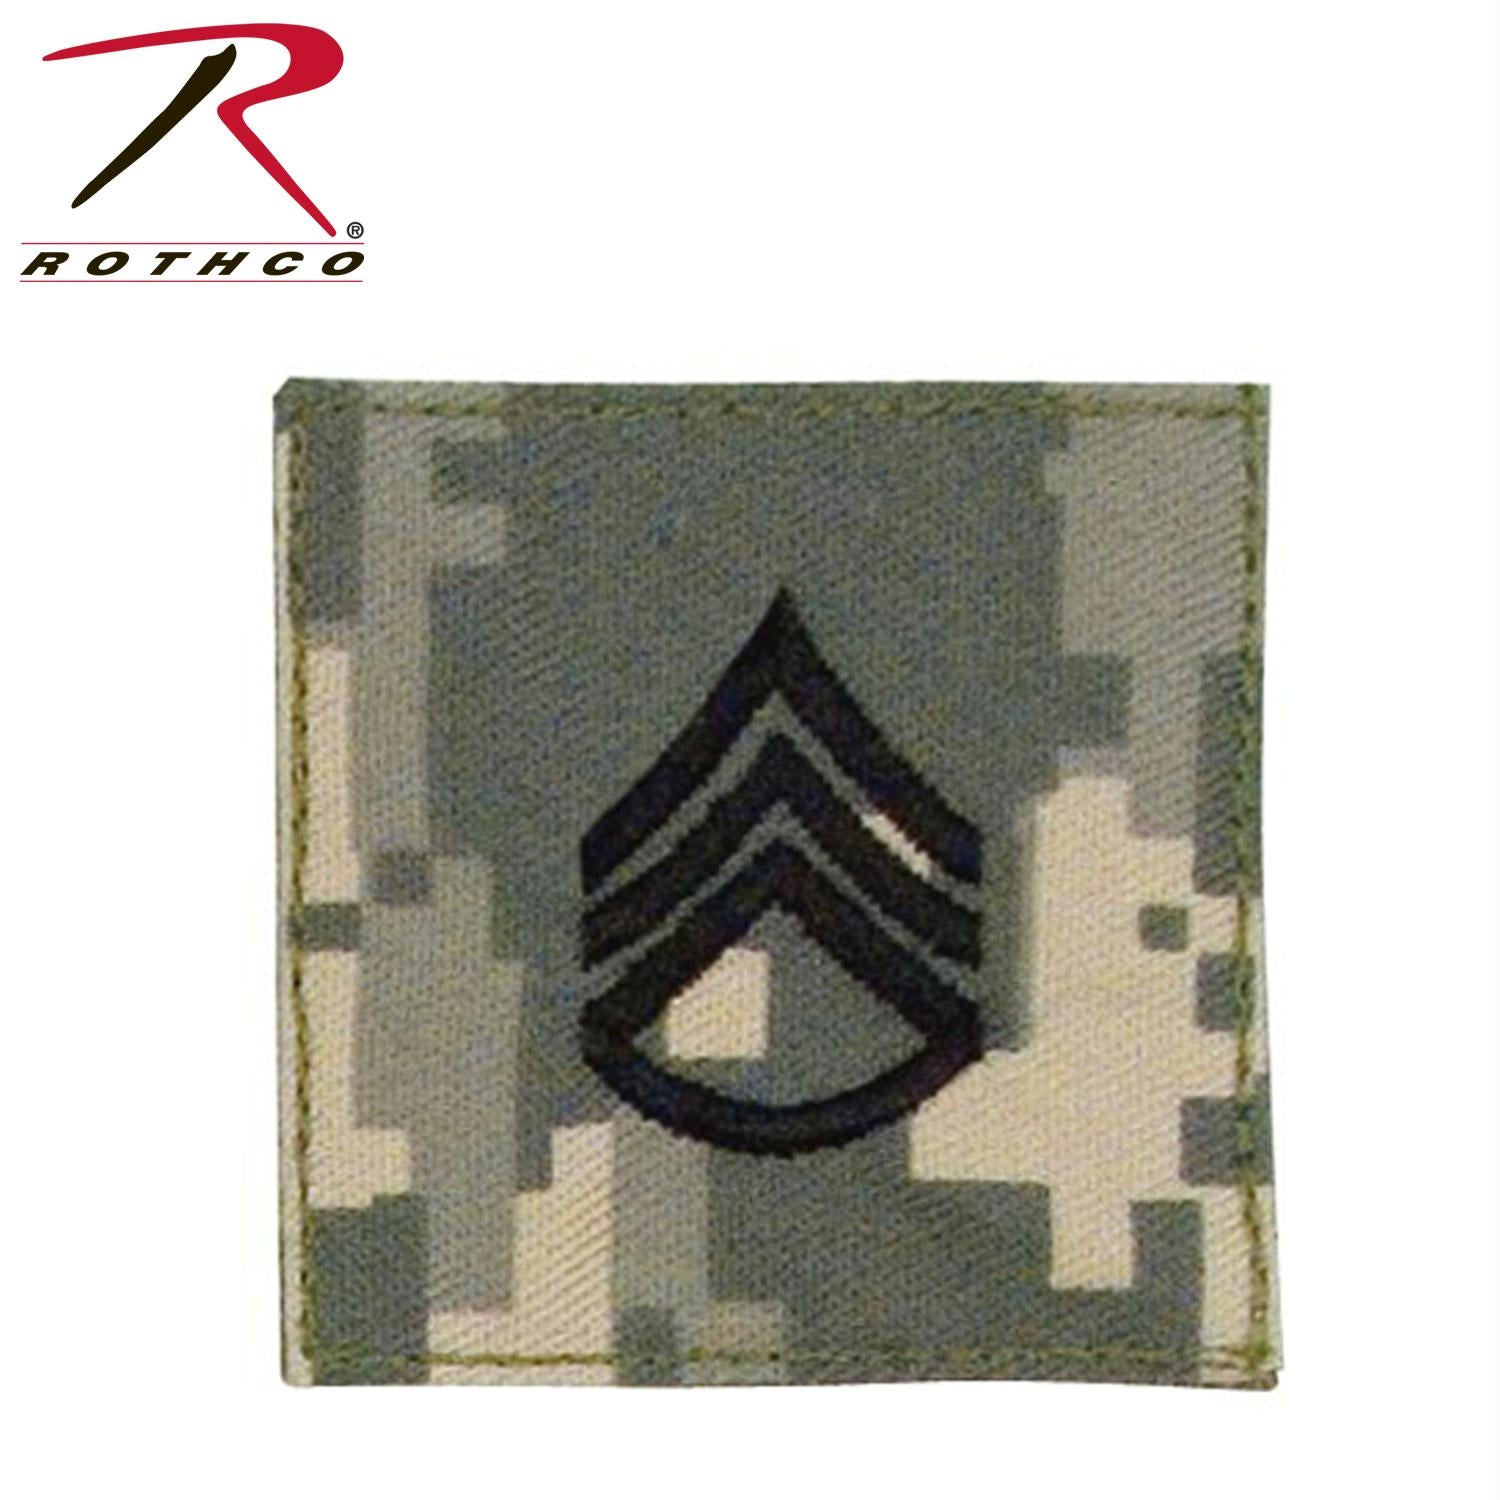 Rothco Official U.S. Made Embroidered Rank Insignia Staff Sergeant Patch - ACU Digital Camo